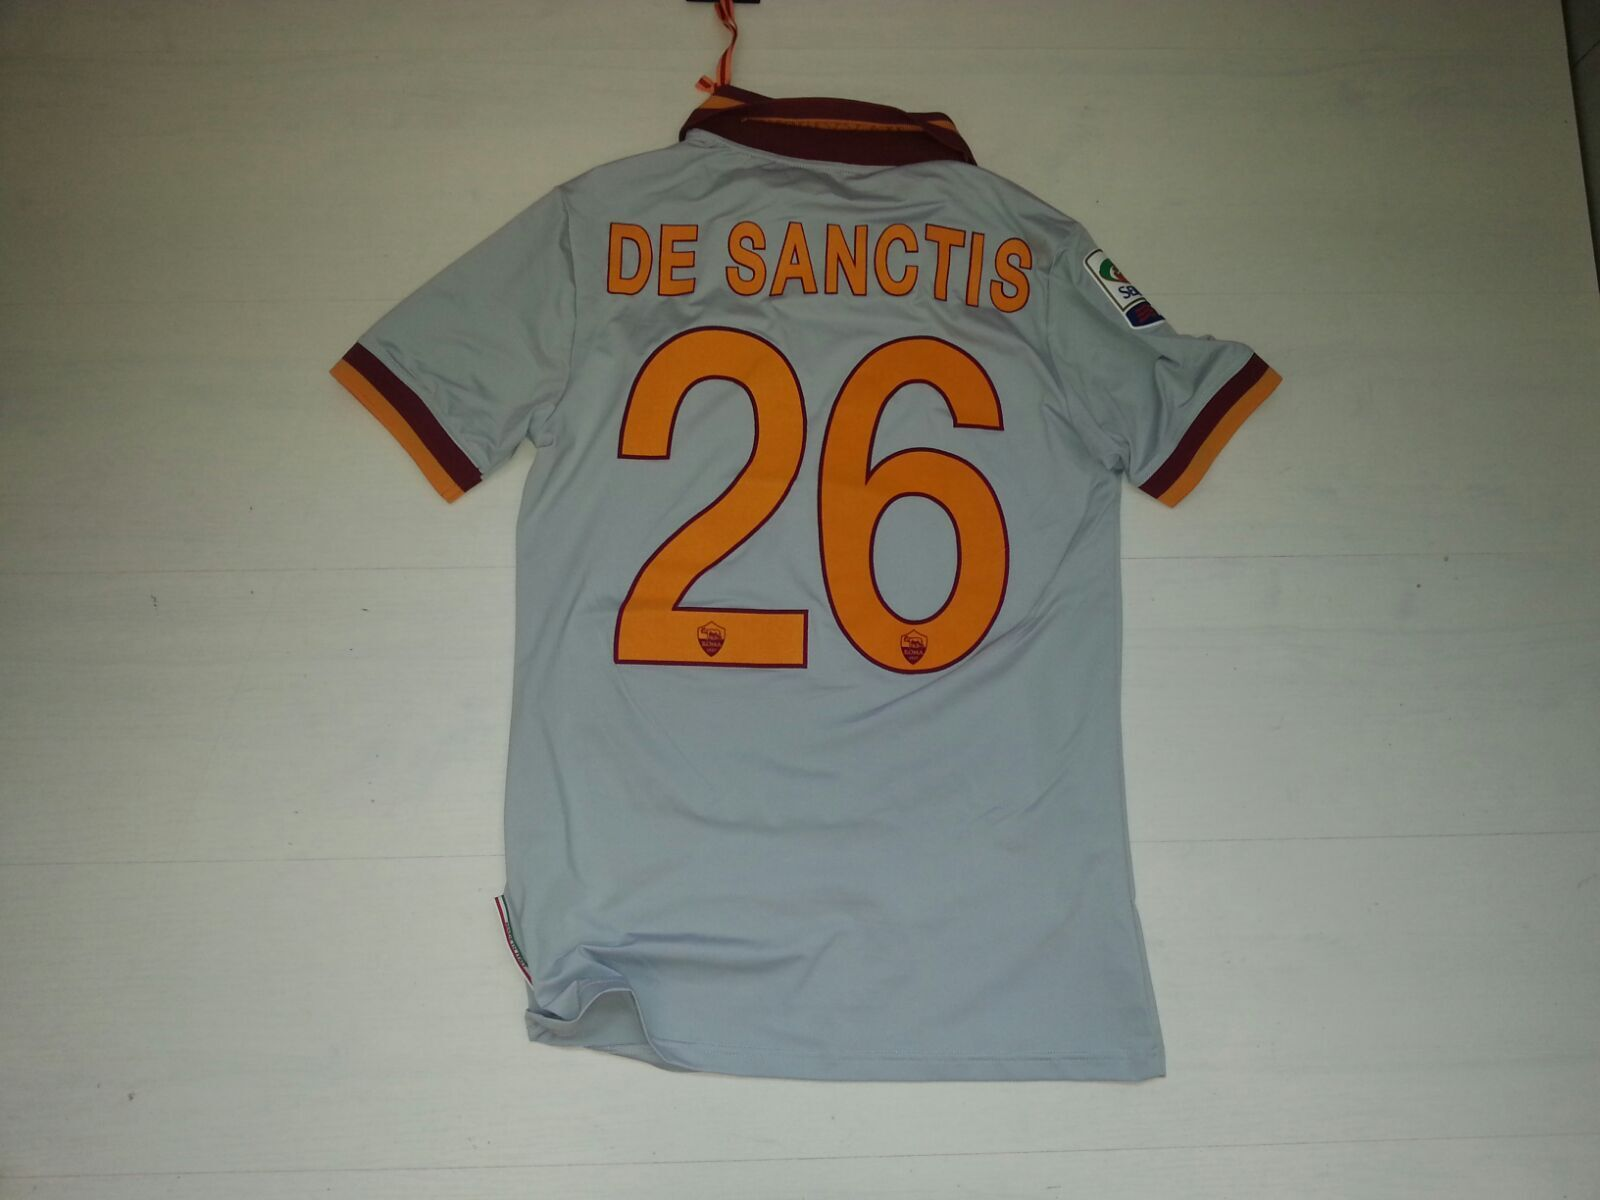 2699 As Roma Cochees de Sanctis Camiseta Portero Gk Shirt gris